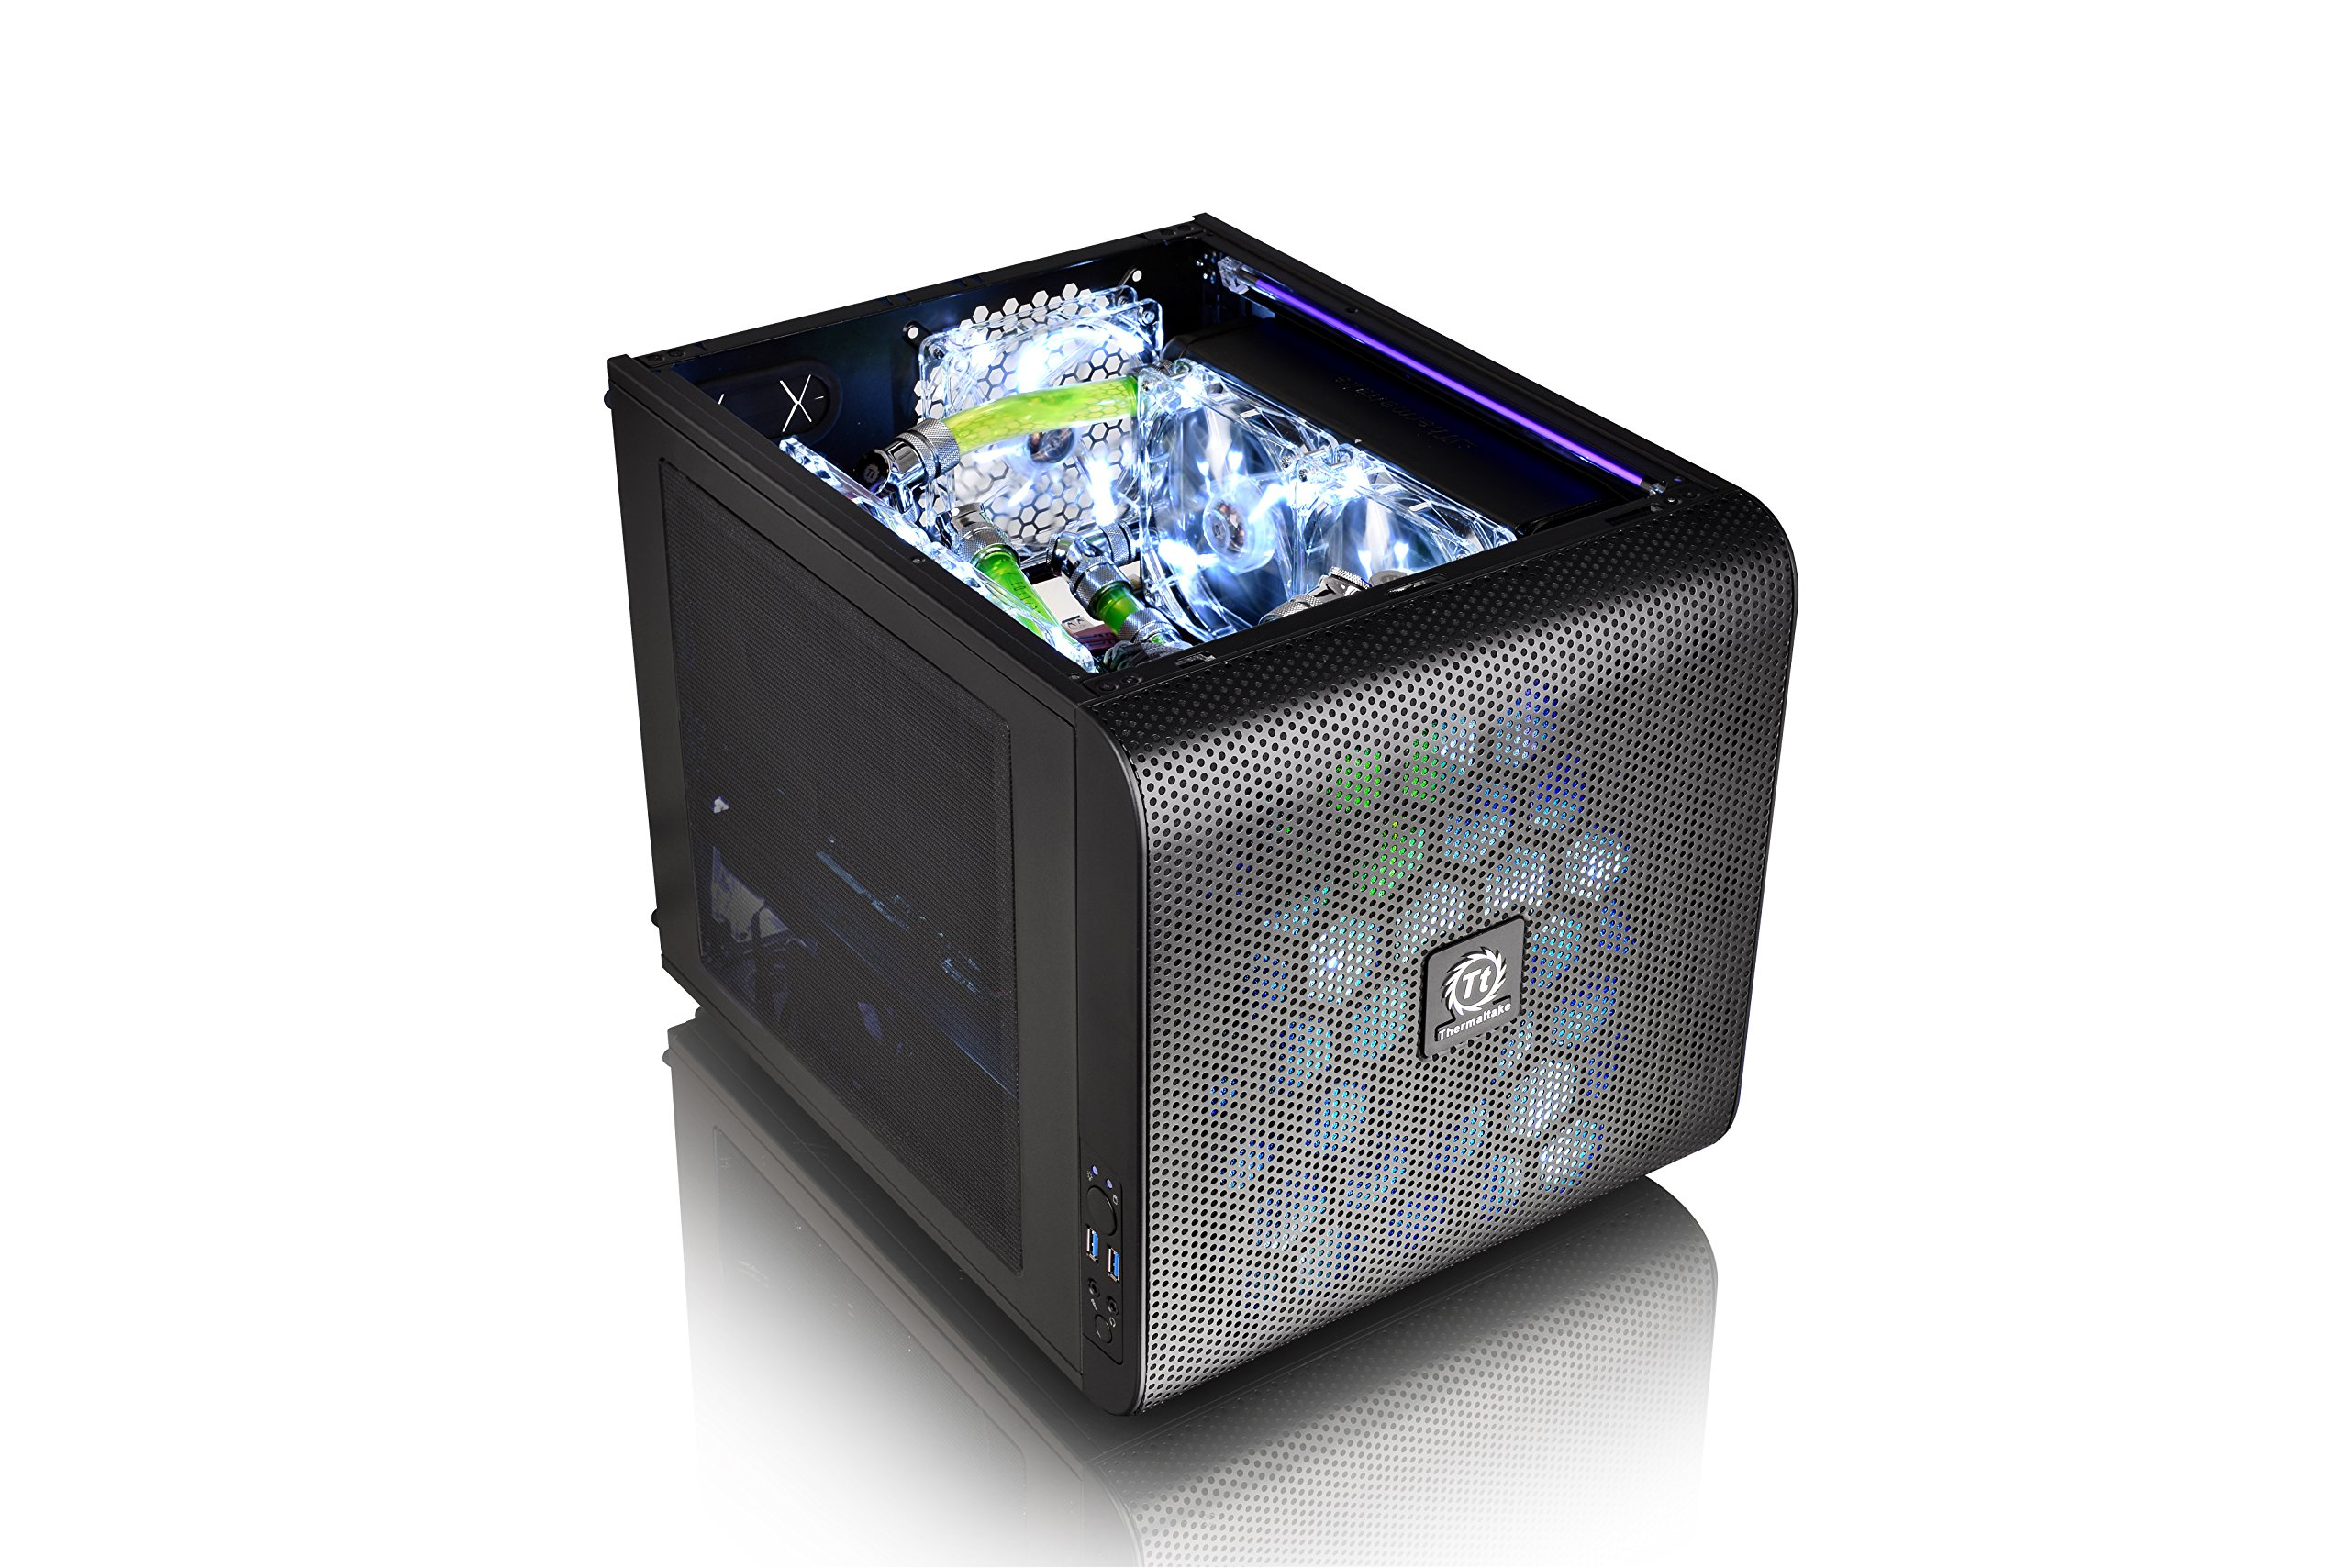 Thermaltake Core V21 SPCC Micro ATX, Mini ITX Cube Gaming Computer Case Chassis, Small Form Factor Builds, 200mm Front Fan Pre-installed, CA-1D5-00S1WN-00 by Thermaltake (Image #12)